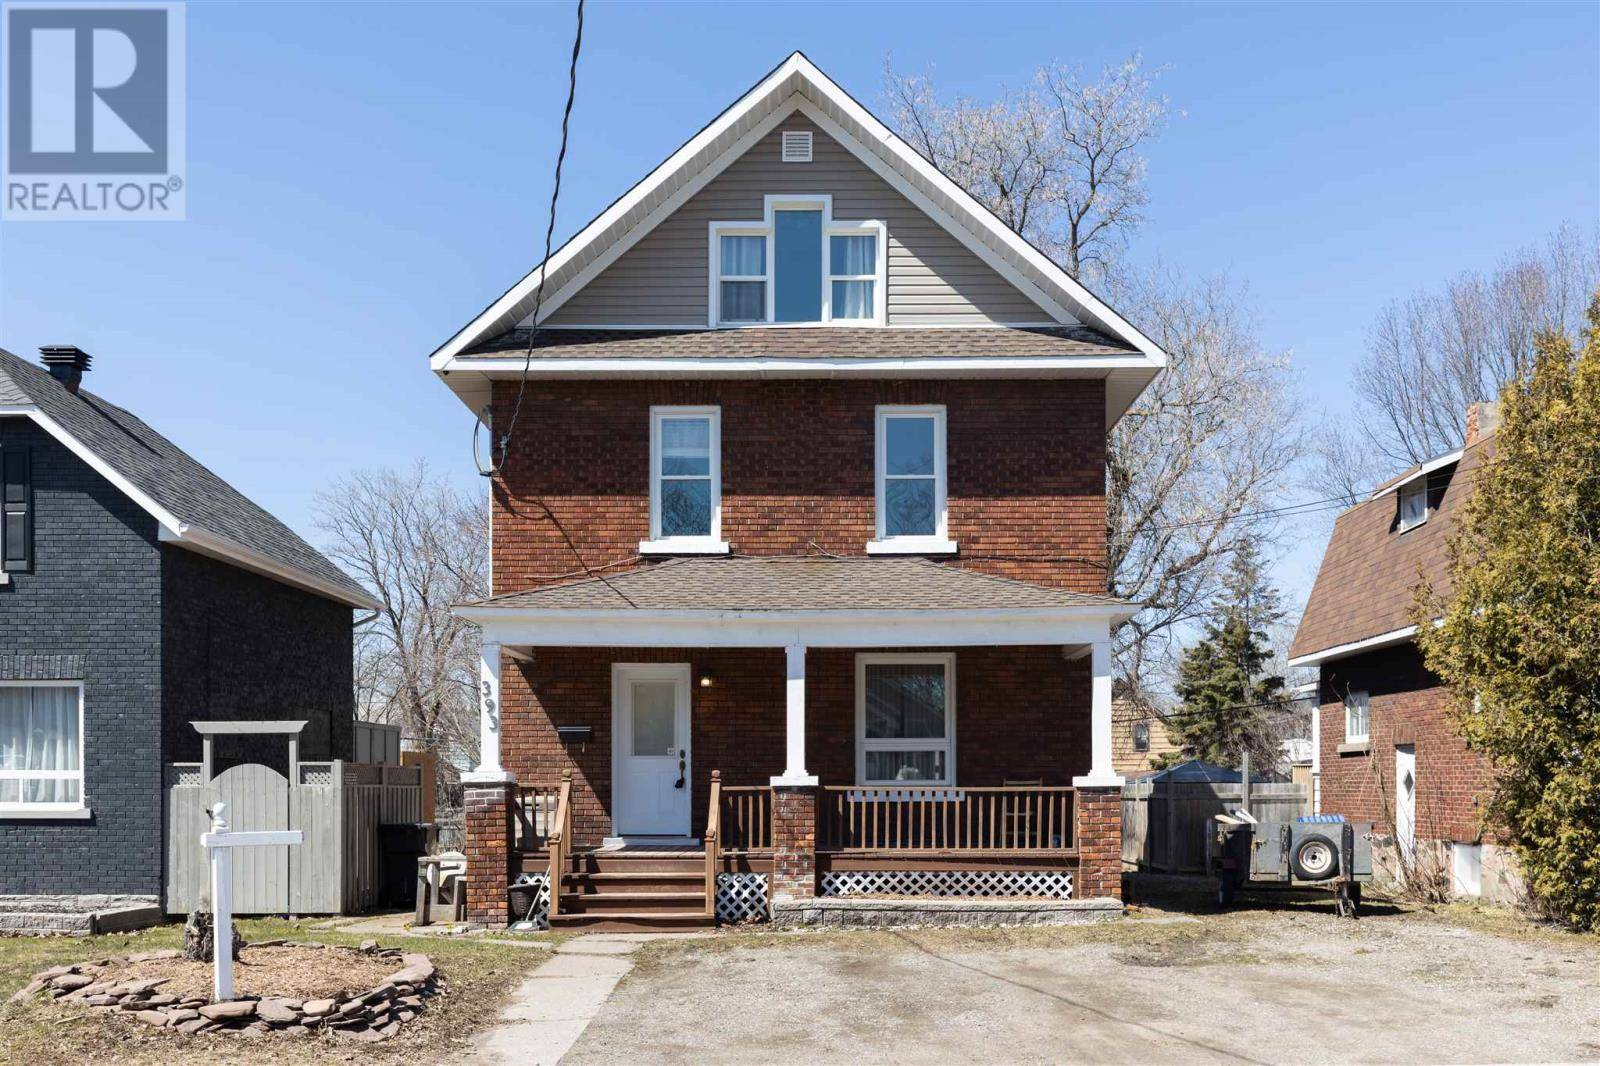 House for sale at 393 Bush St Sault Ste. Marie Ontario - MLS: SM128369